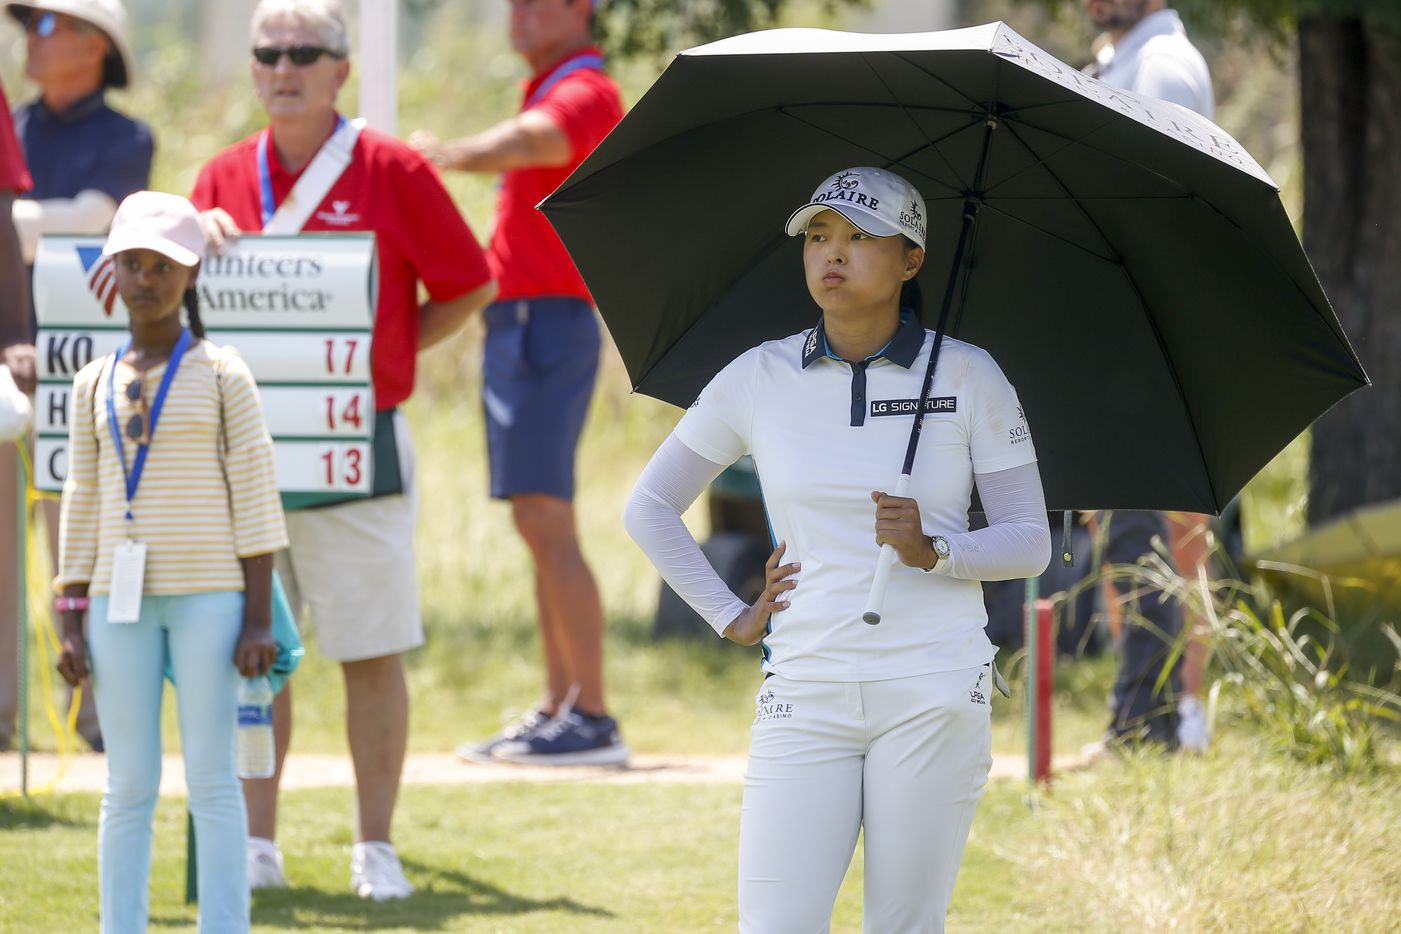 Professional golfer Jin Young Ko takes a breath as her group finishes on the No. 4 green during the final round of the LPGA VOA Classic on Sunday, July 4, 2021, in The Colony, Texas. (Elias Valverde II/The Dallas Morning News)